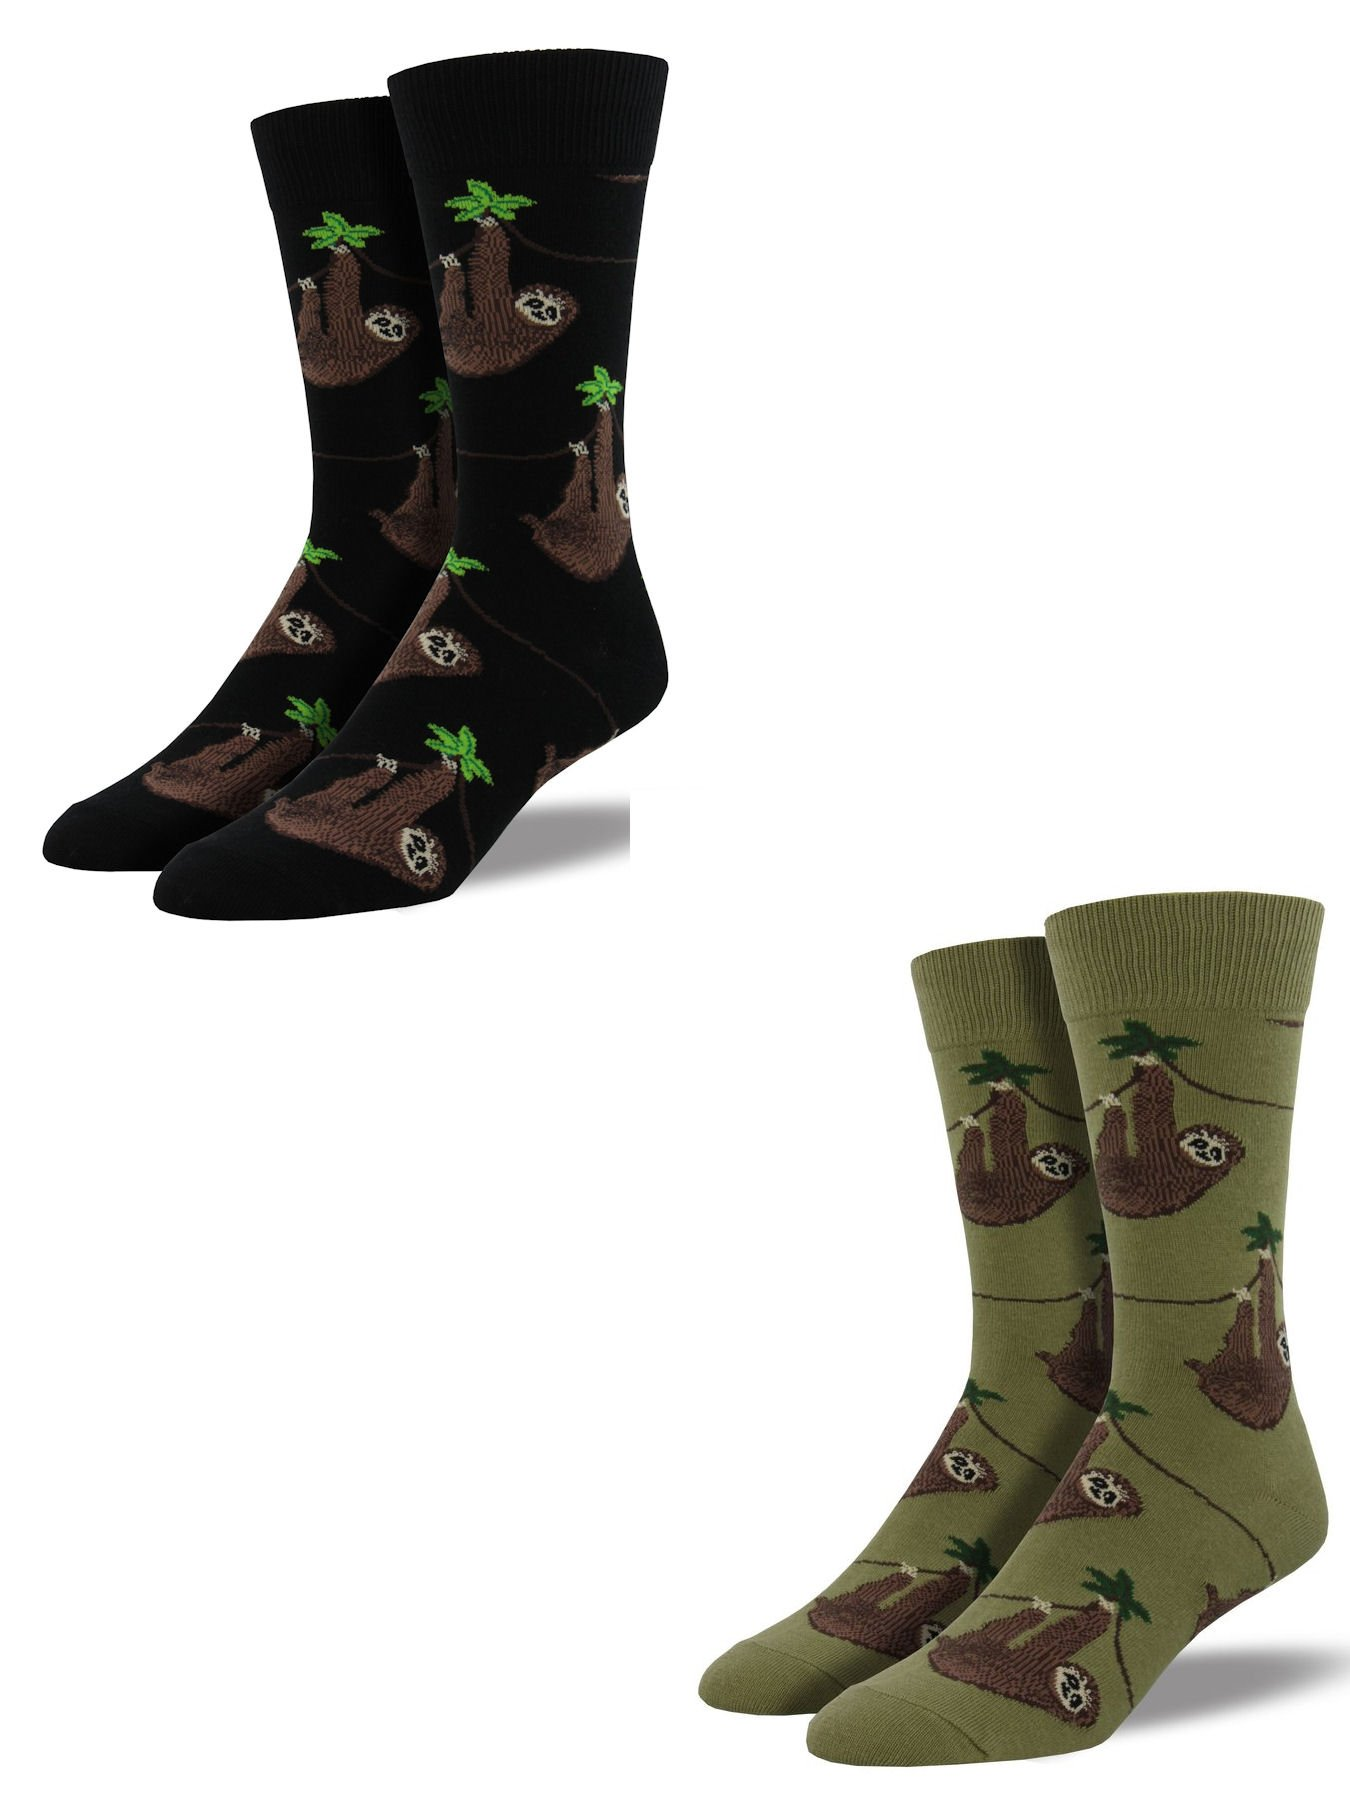 Bundle 2 Items: Sloth Black And Olive One Size Fits Most Mens Socks - Socksmith